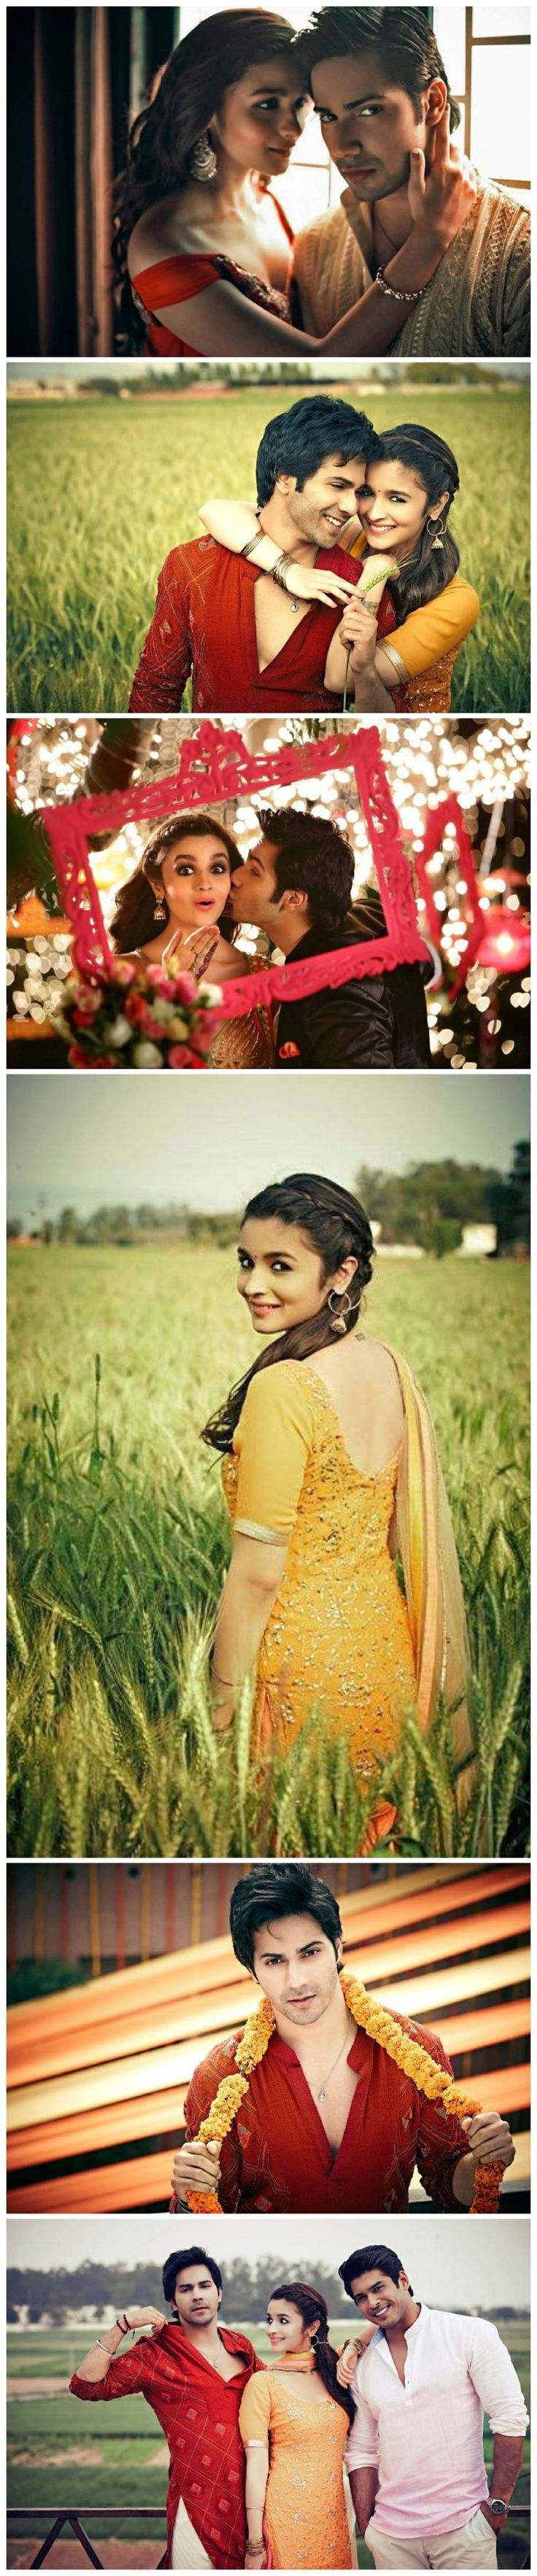 Exclusive images from Humpty Sharma Ki Dulhania.